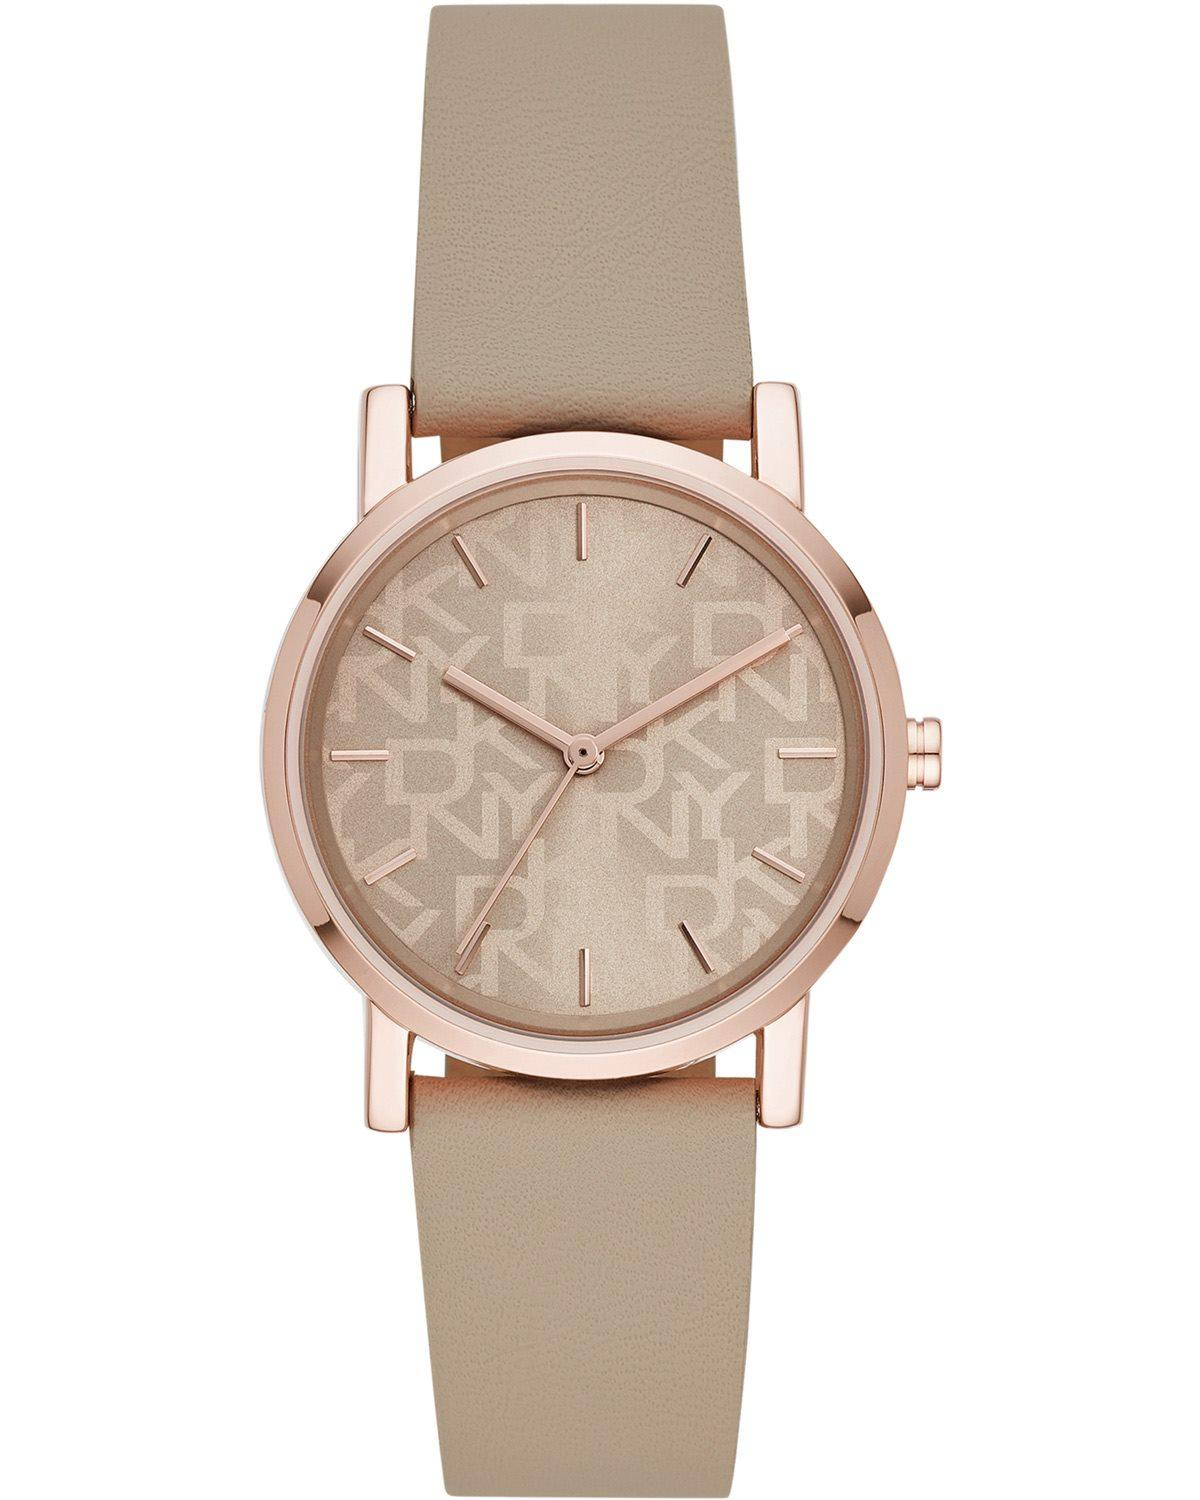 DKNY Soho - NY2856 Rose Gold case with Beige Rubber Strap